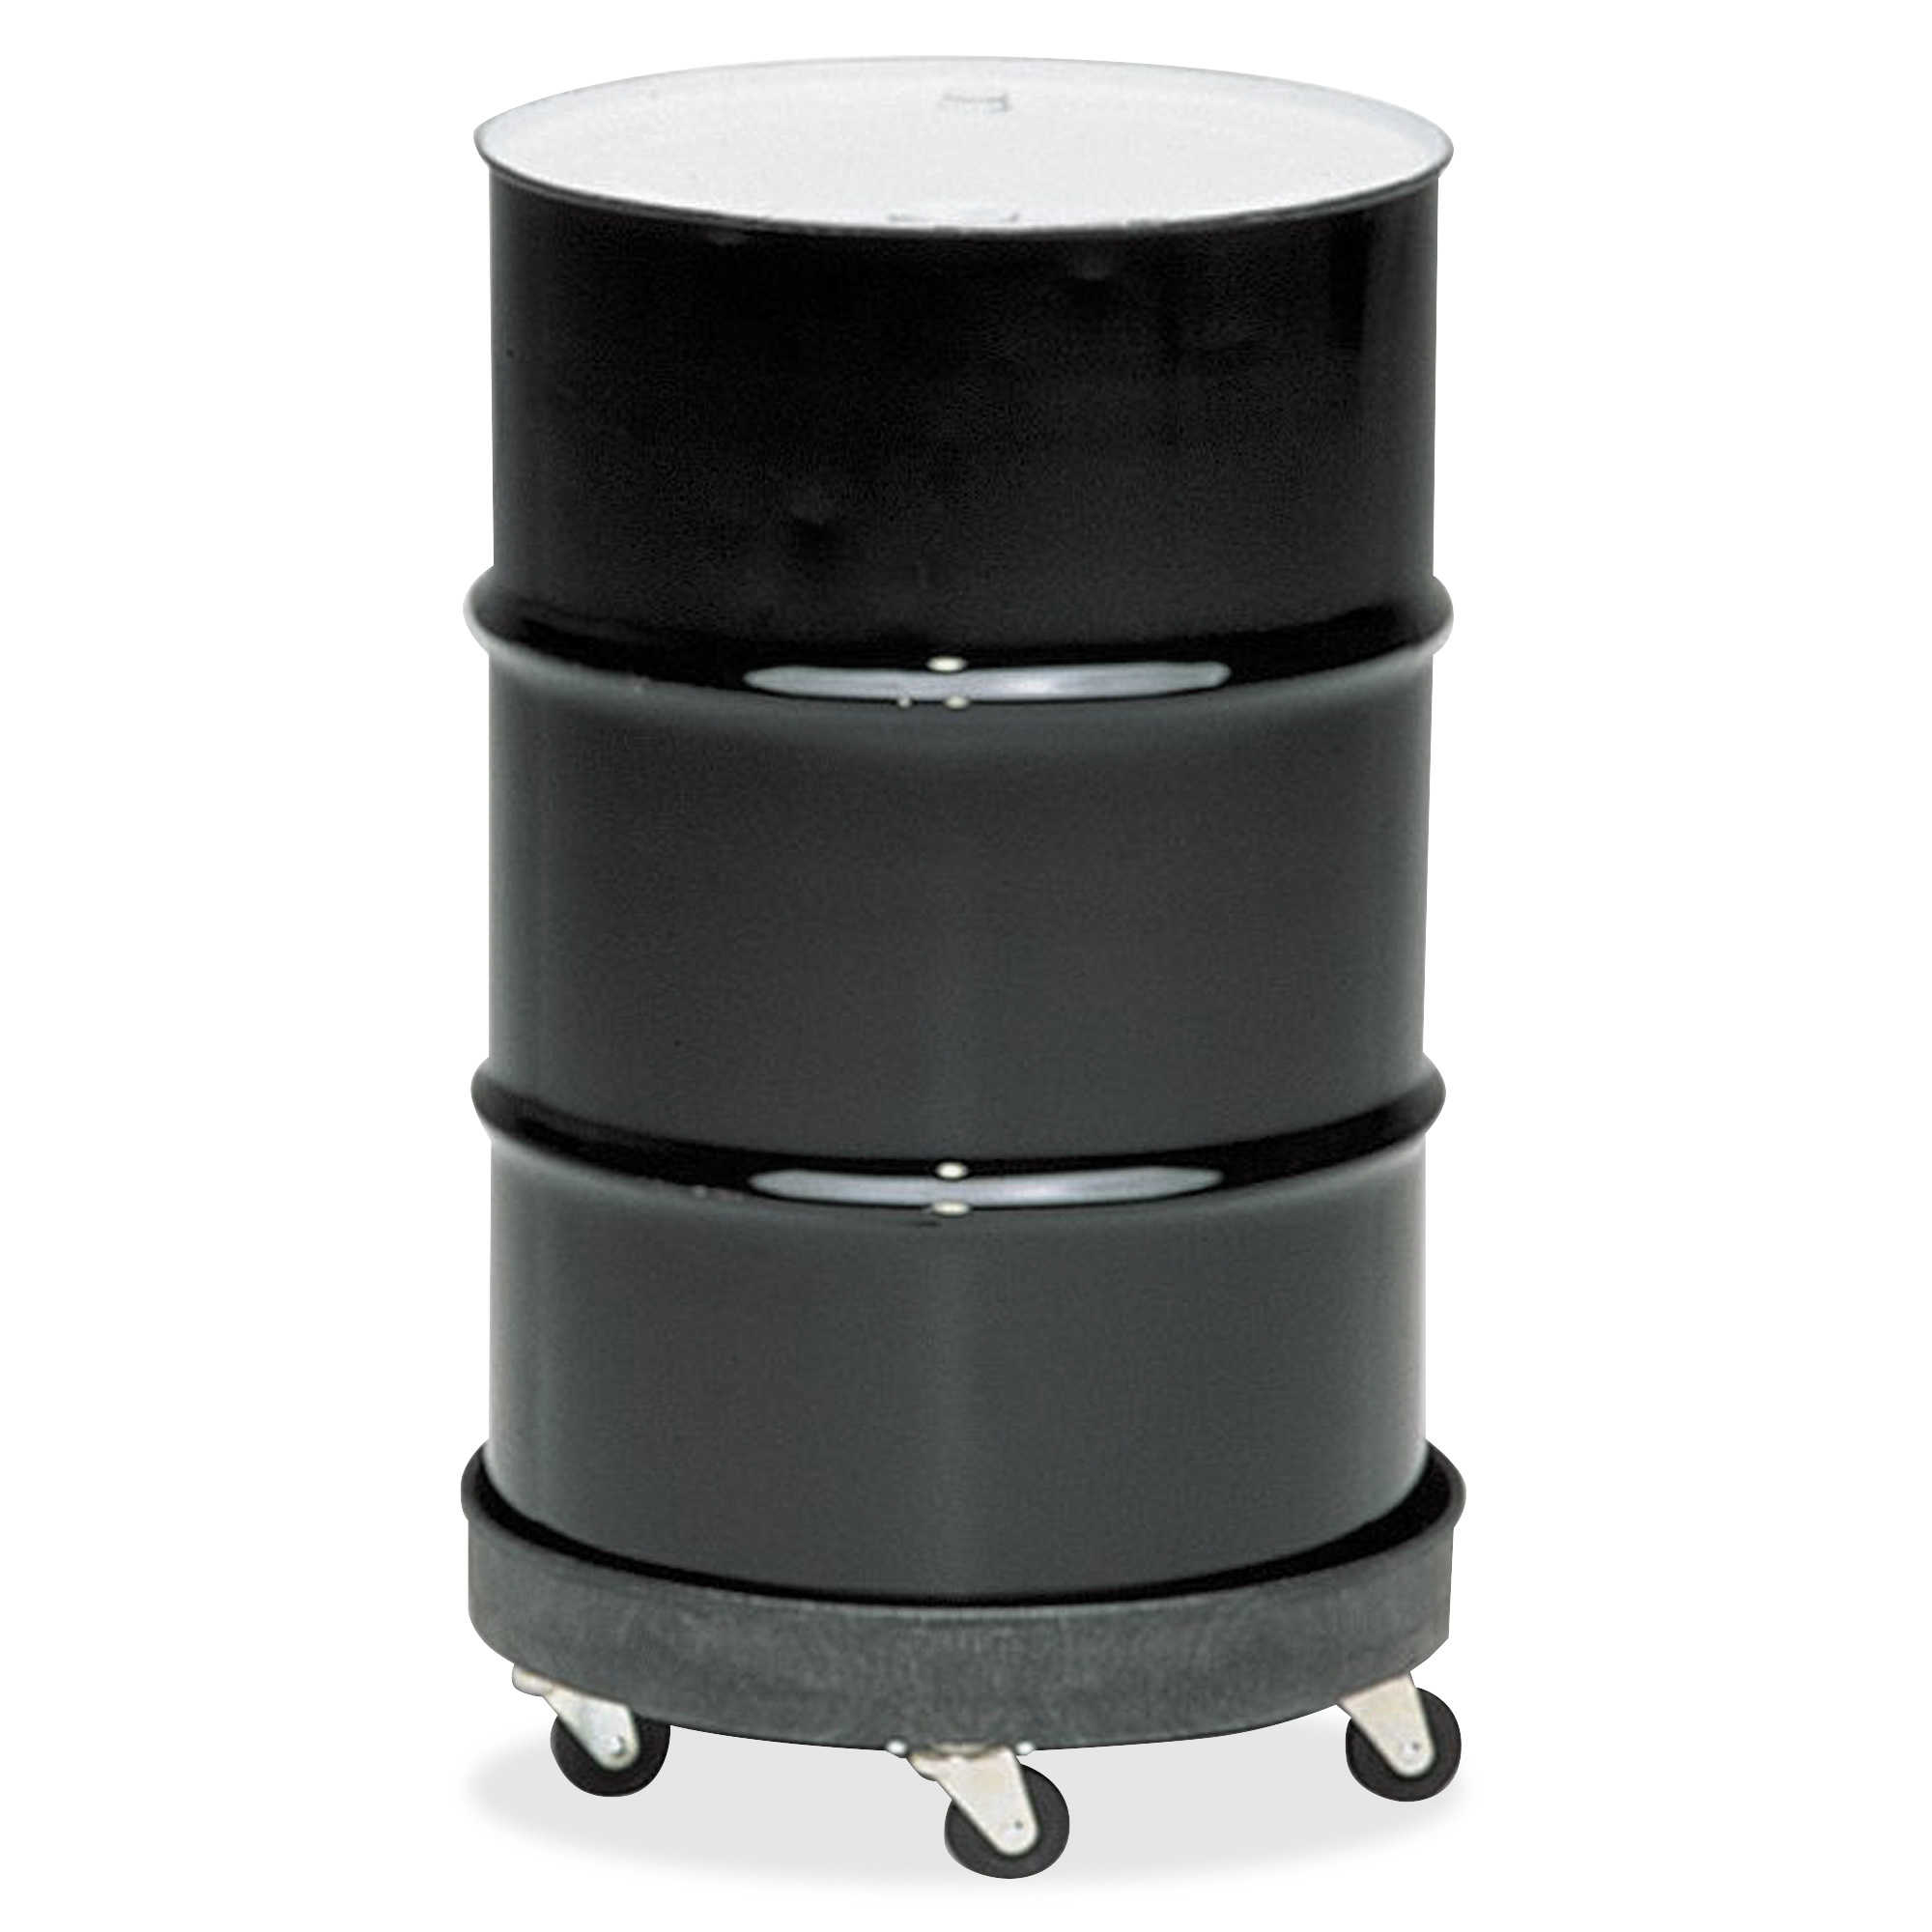 Rubbermaid Commercial Brute Container Universal Drum Dolly, 500lb, Black